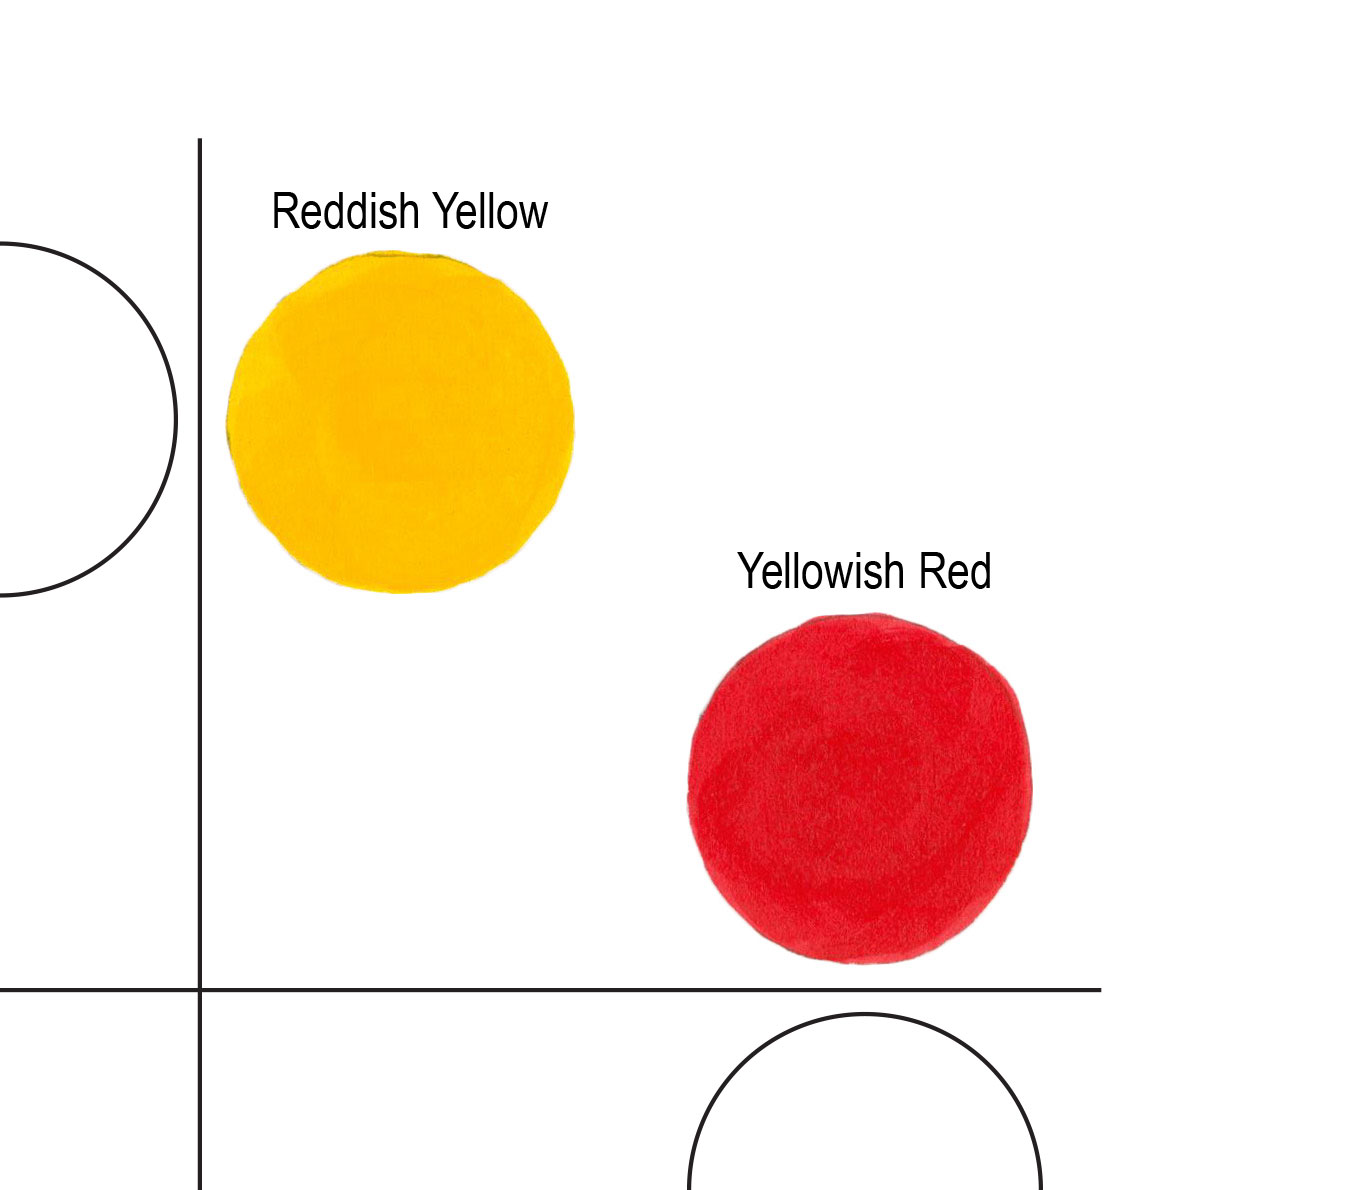 Figure 4 The Yellow Red Quadrant Contains A Reddish And Yellowish